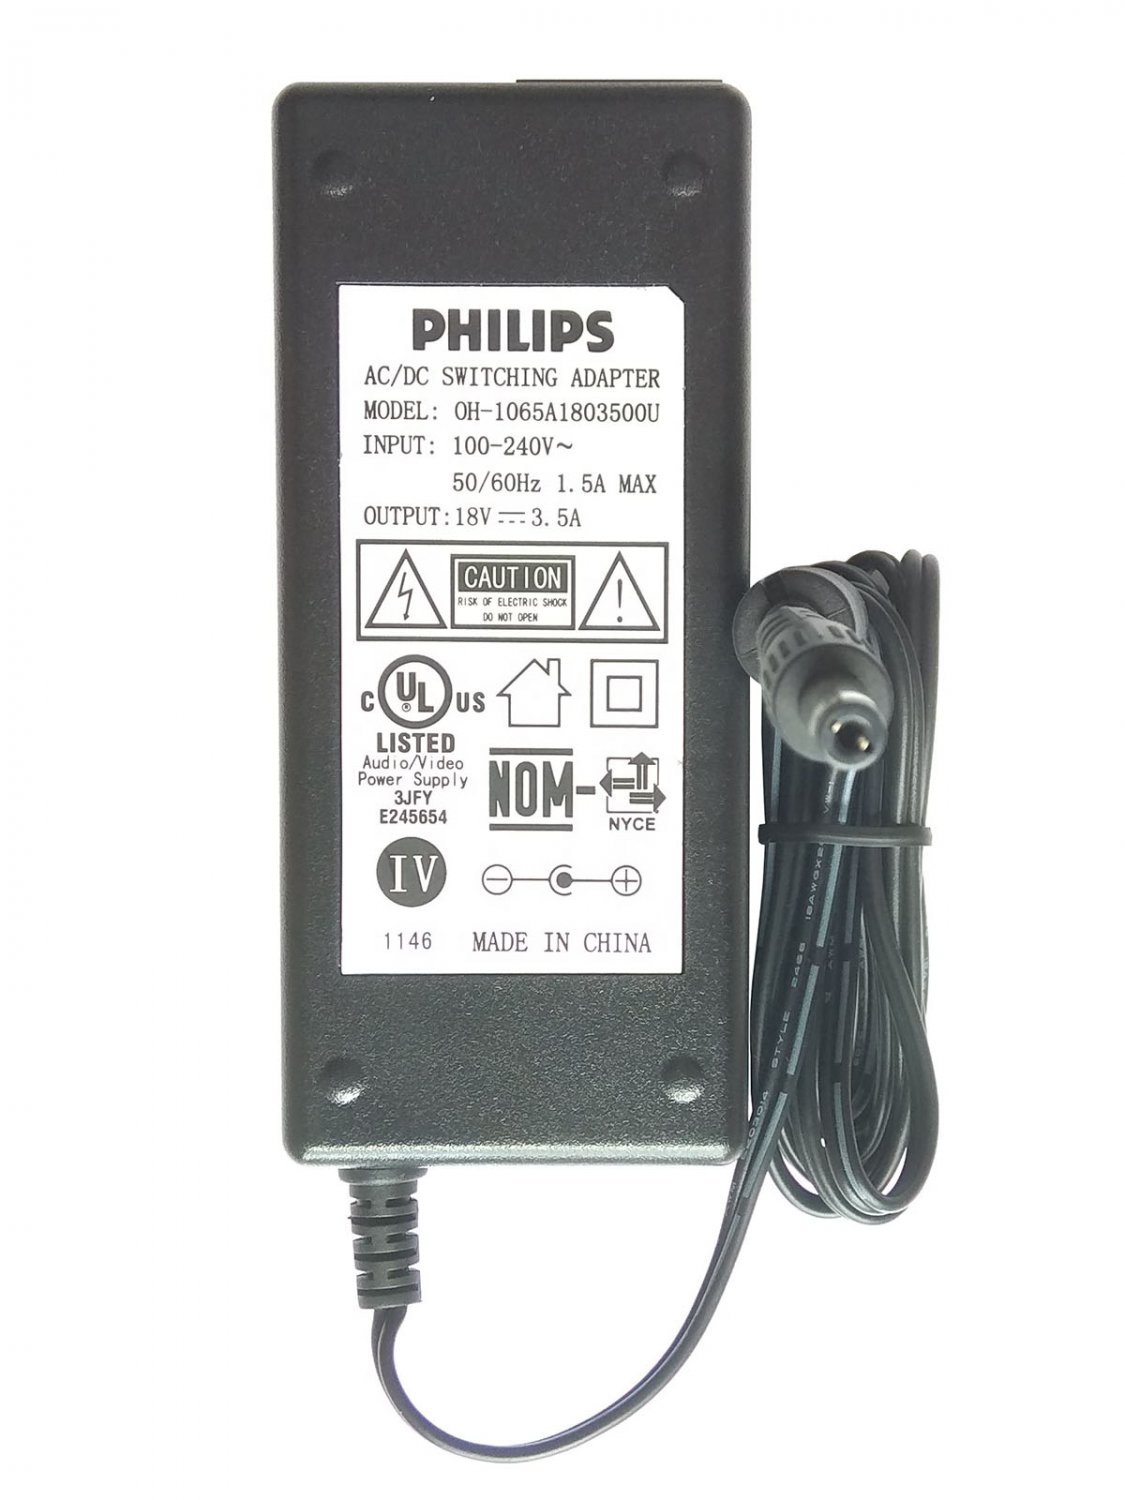 18V 3.5A Replace 18V 0.8A PSA15W-180 Phihong Switching AC Adaptor